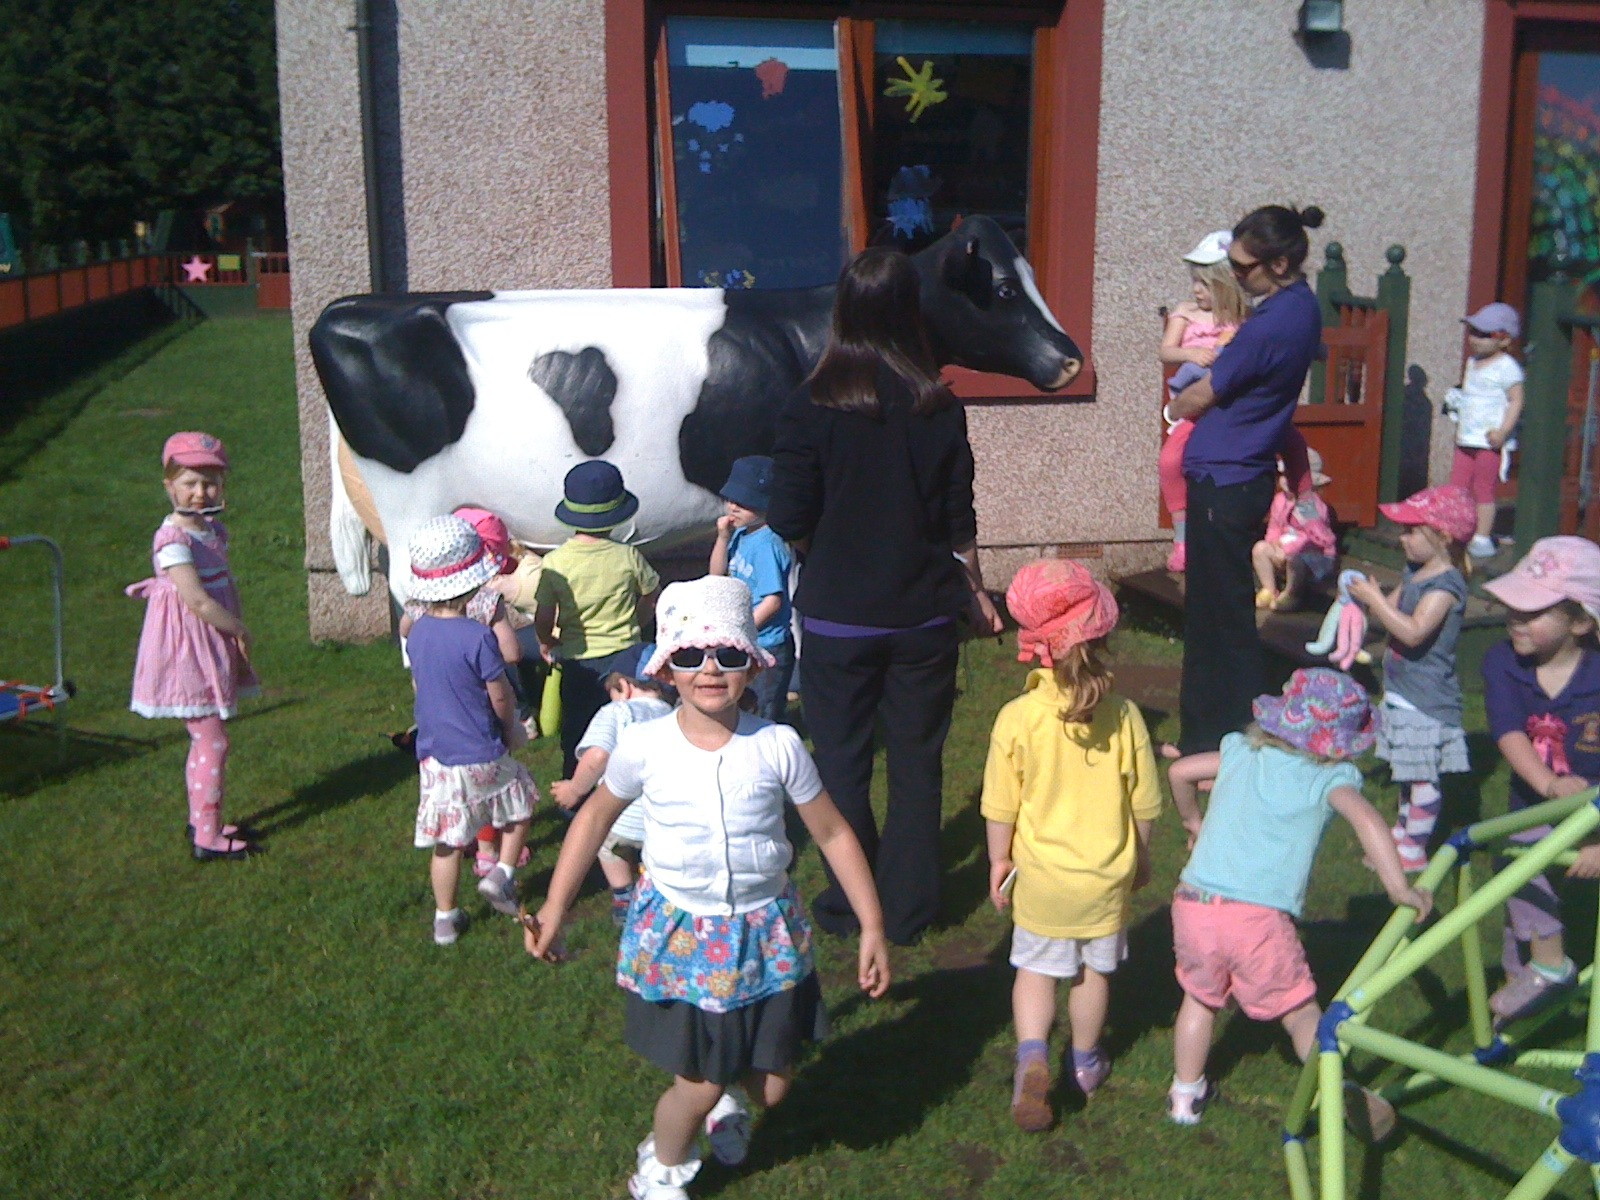 3D Milking Cow being admired at a Nursery School